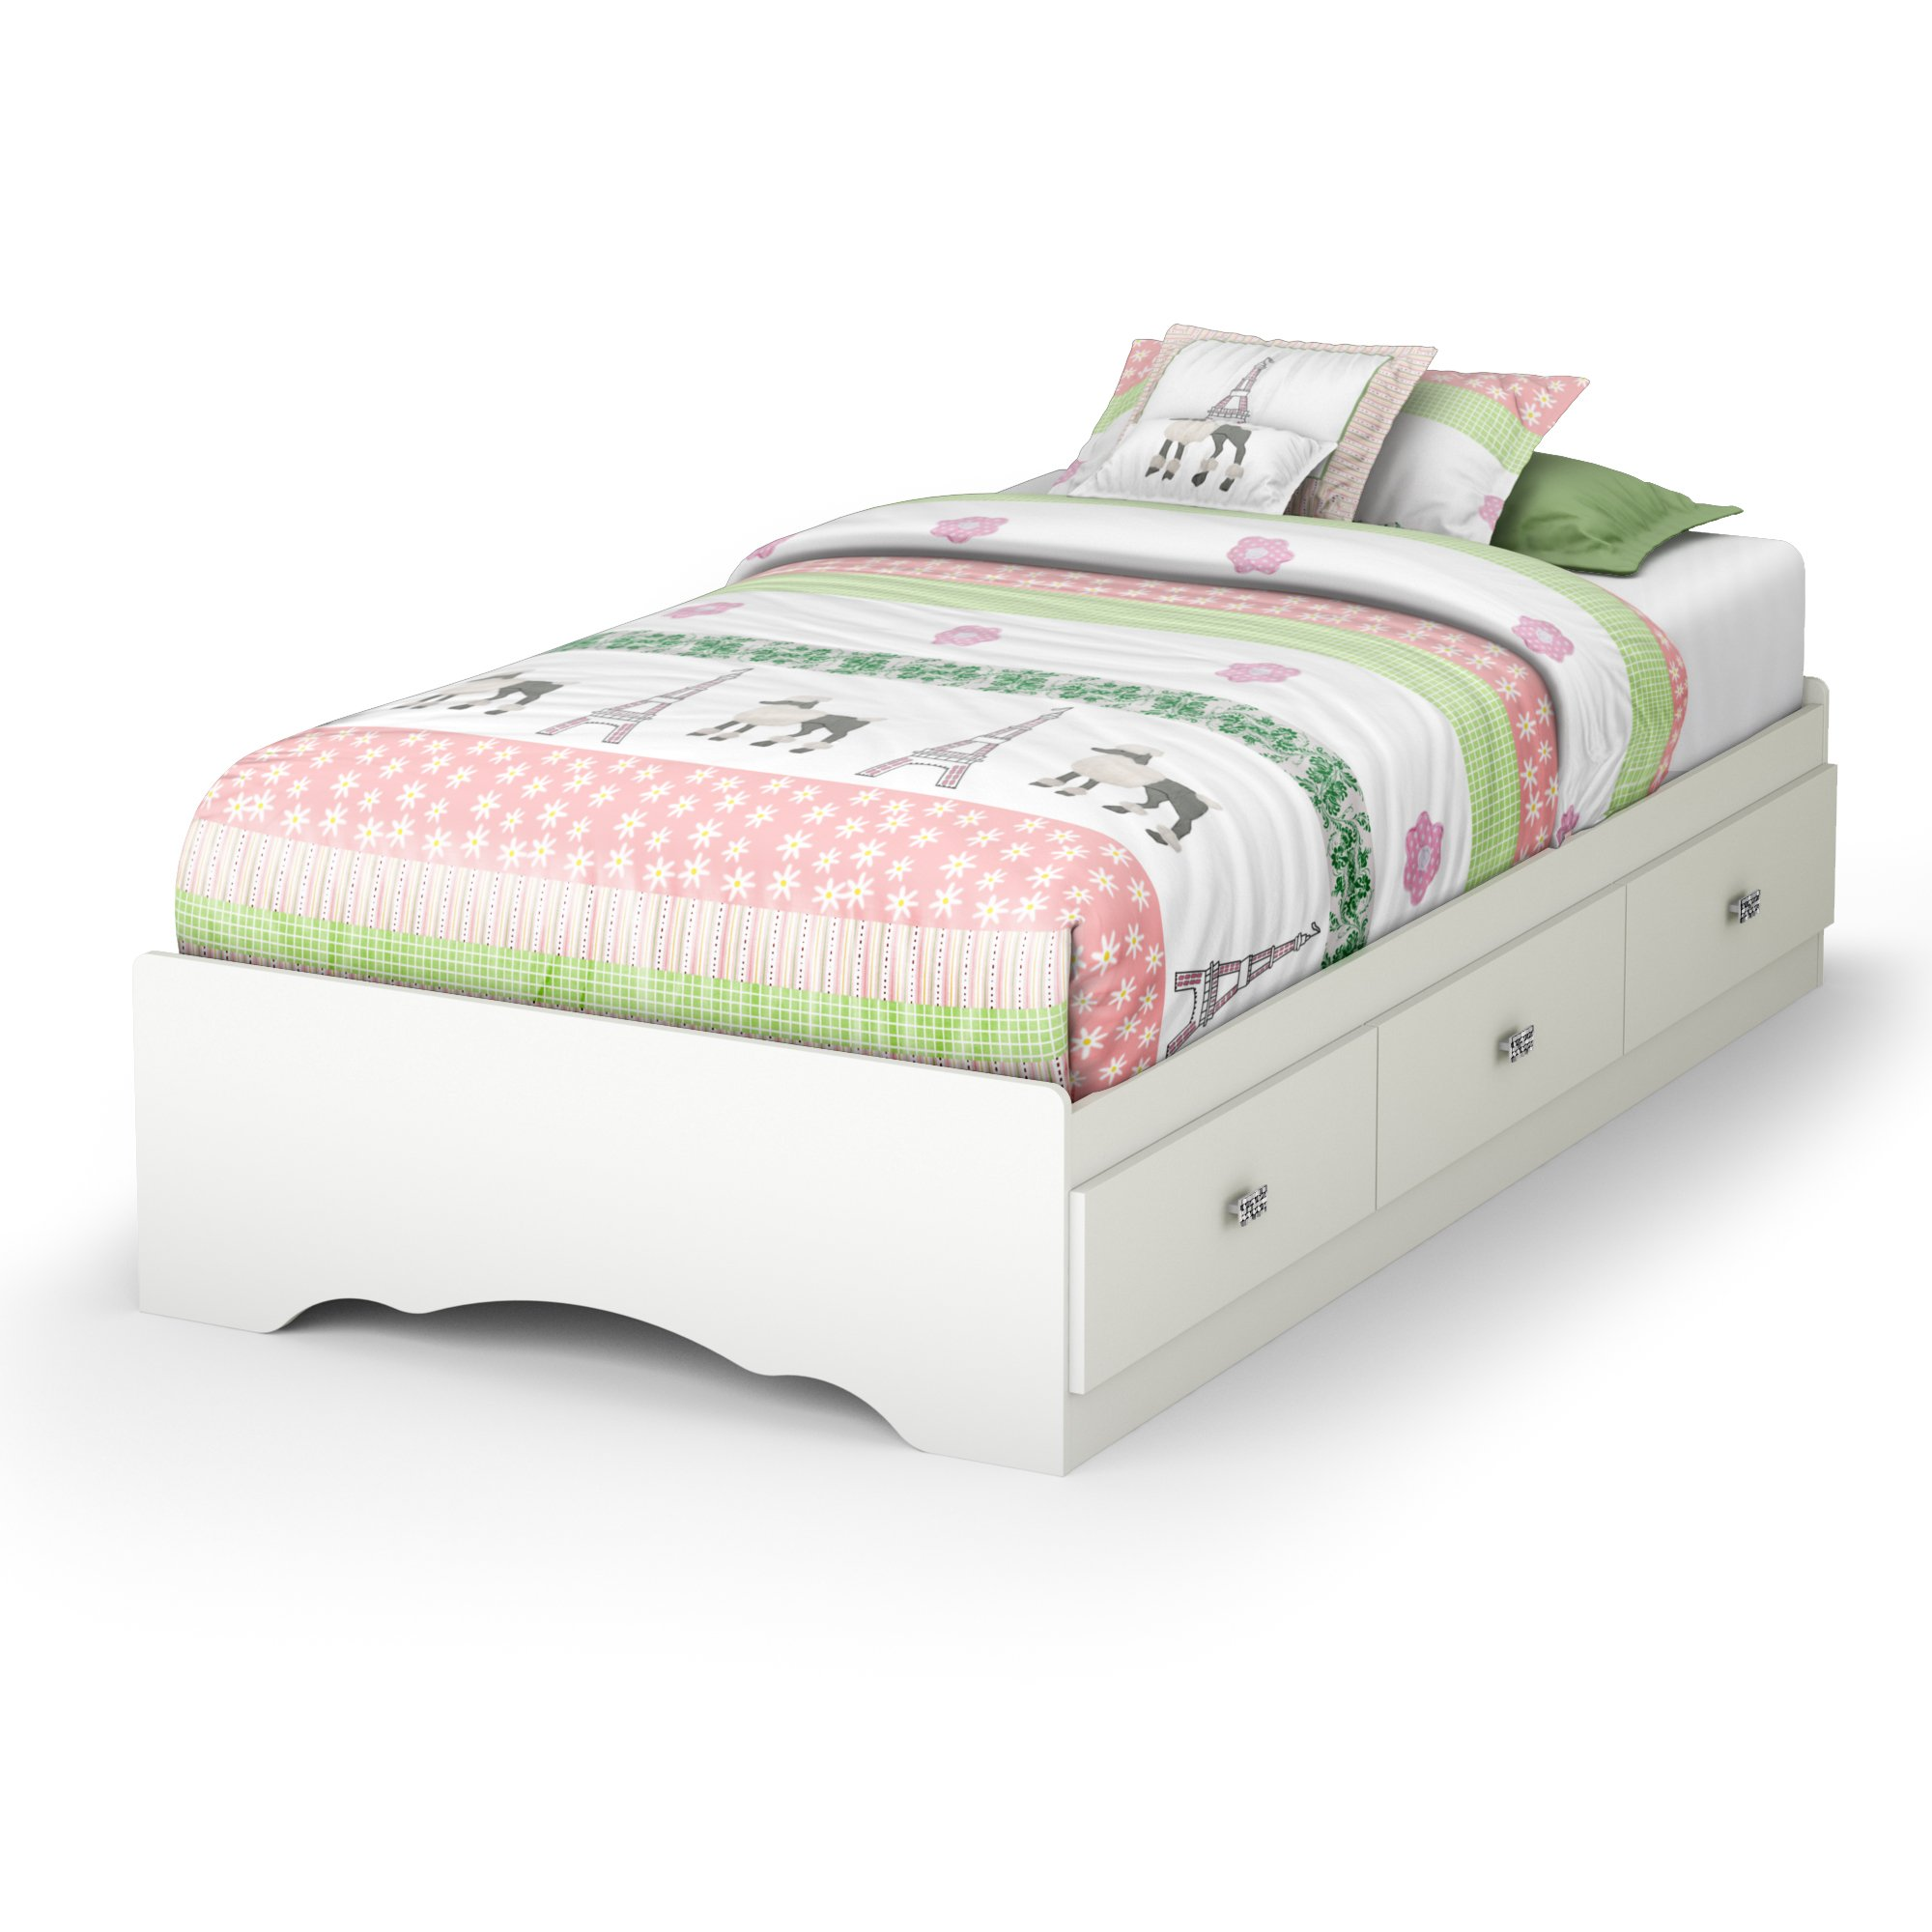 Tiara Collection Twin Bed with Storage - Platform Bed with 3 Drawers - Pure White by South Shore